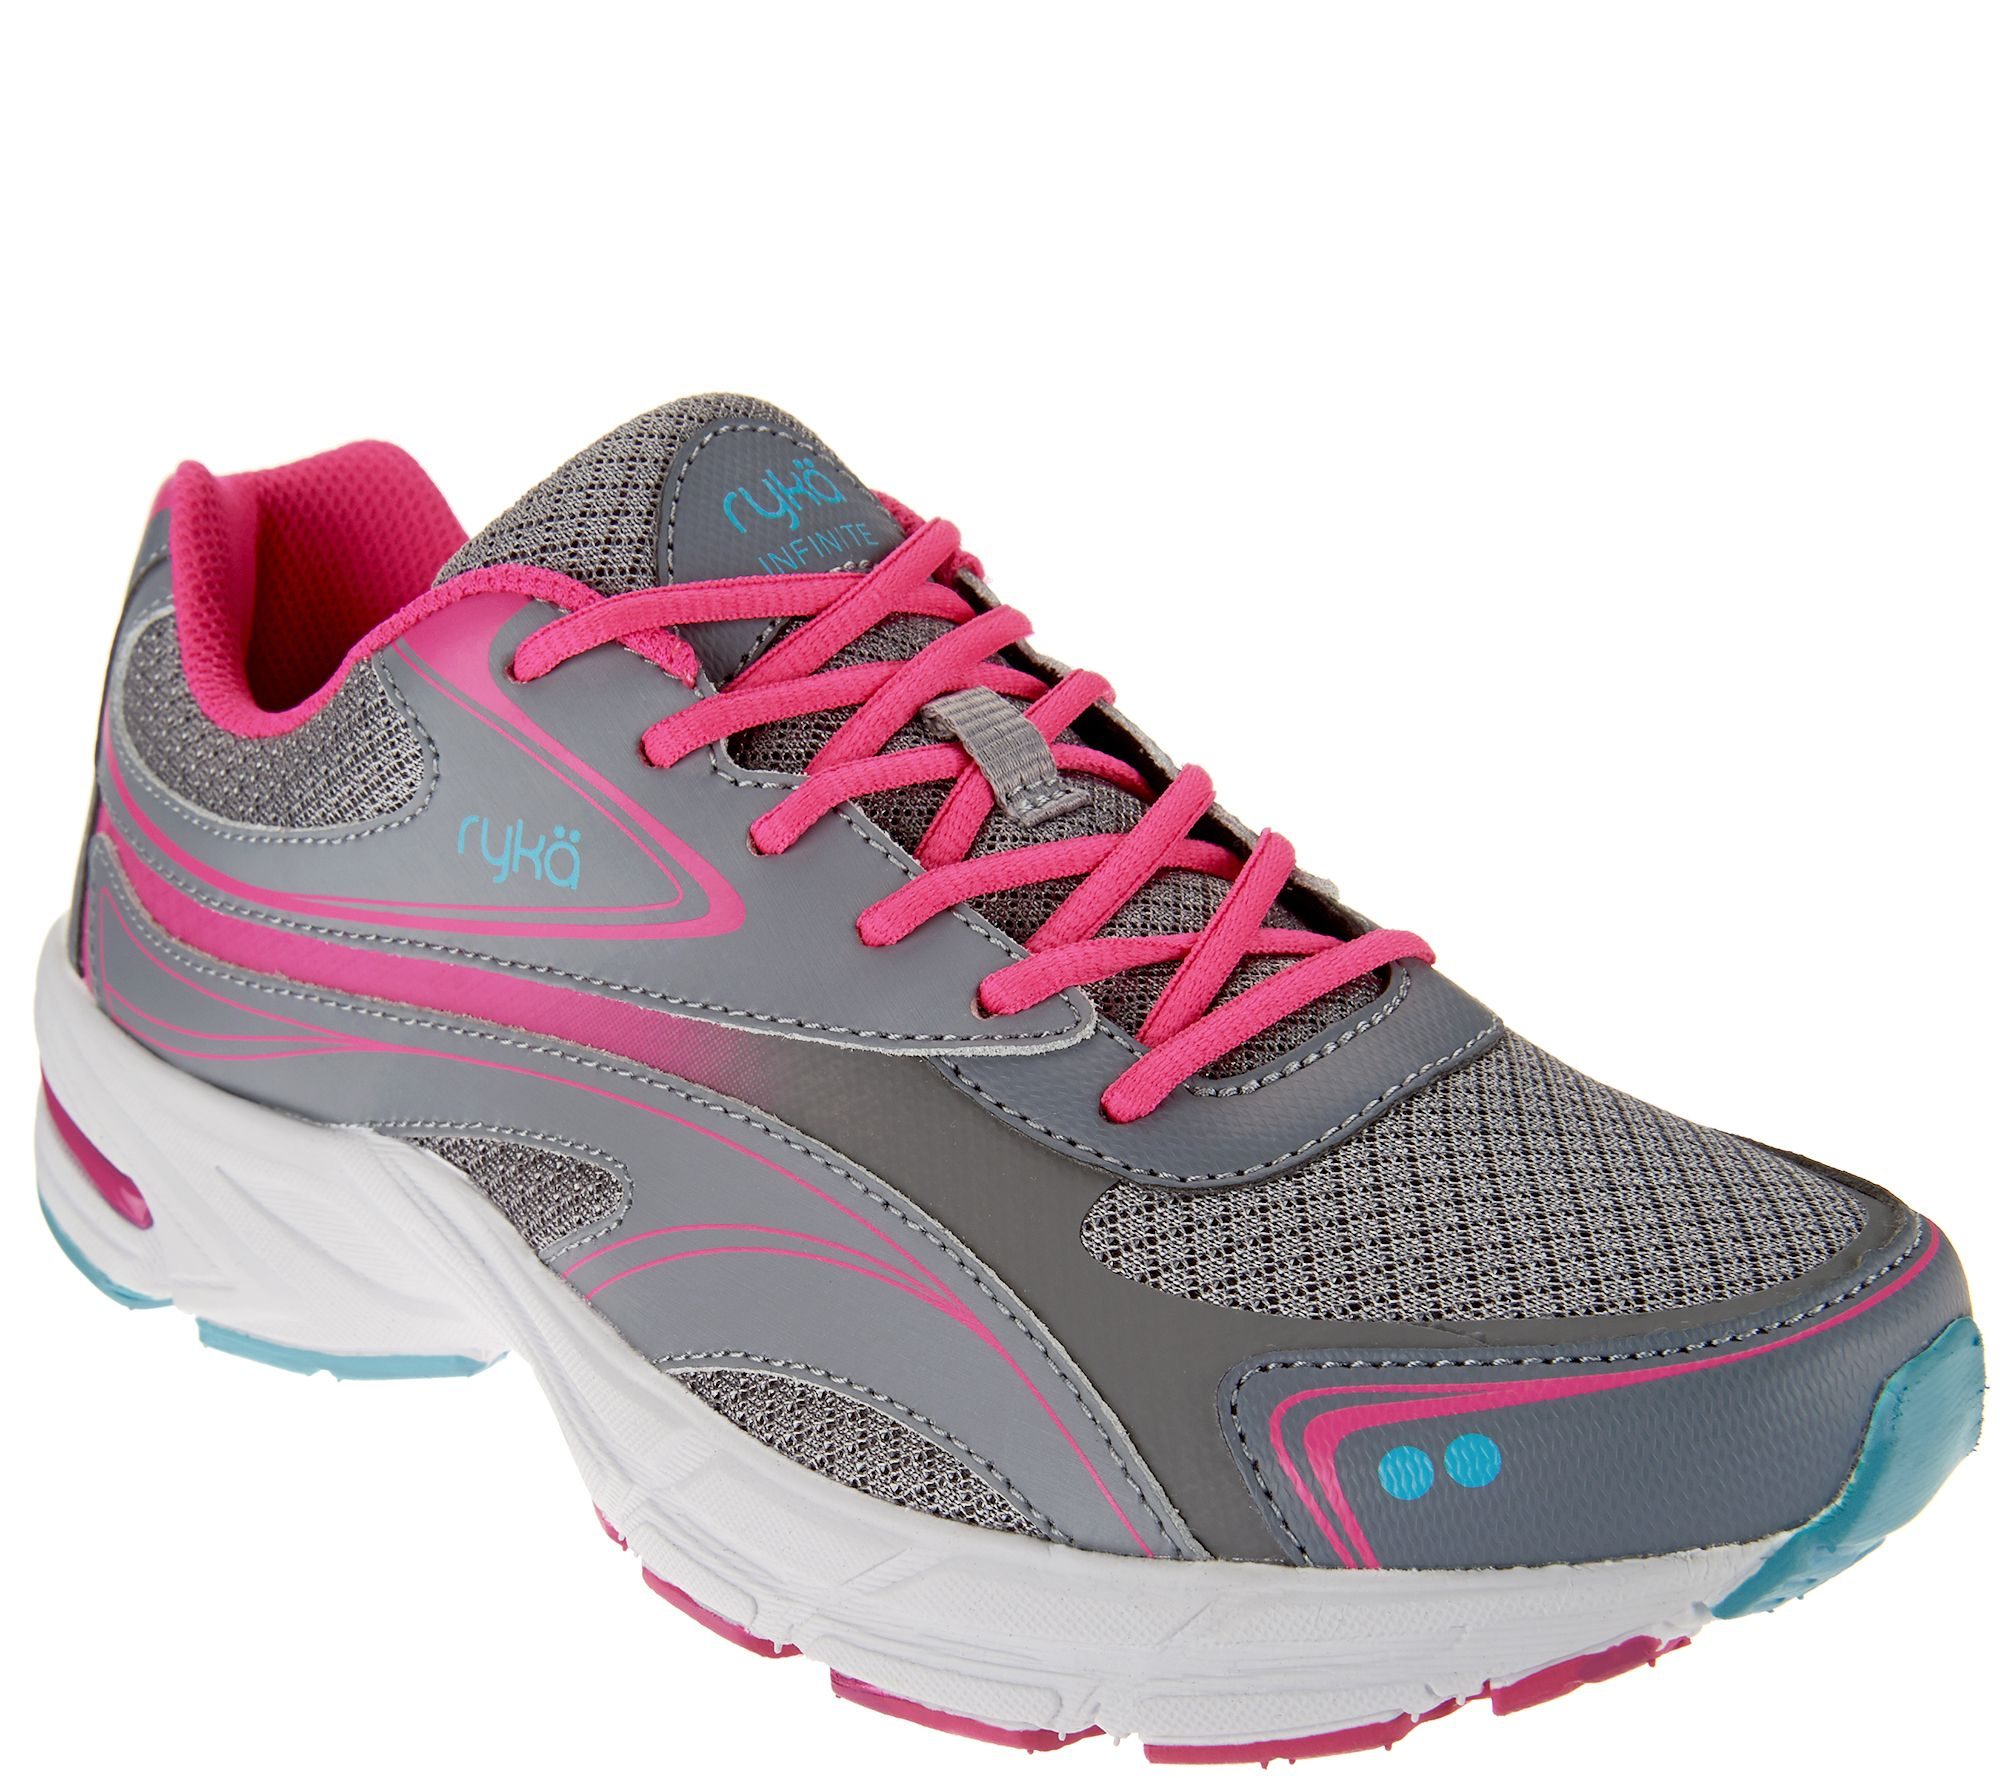 ryka lace up walking sneakers infinite page 1 qvc